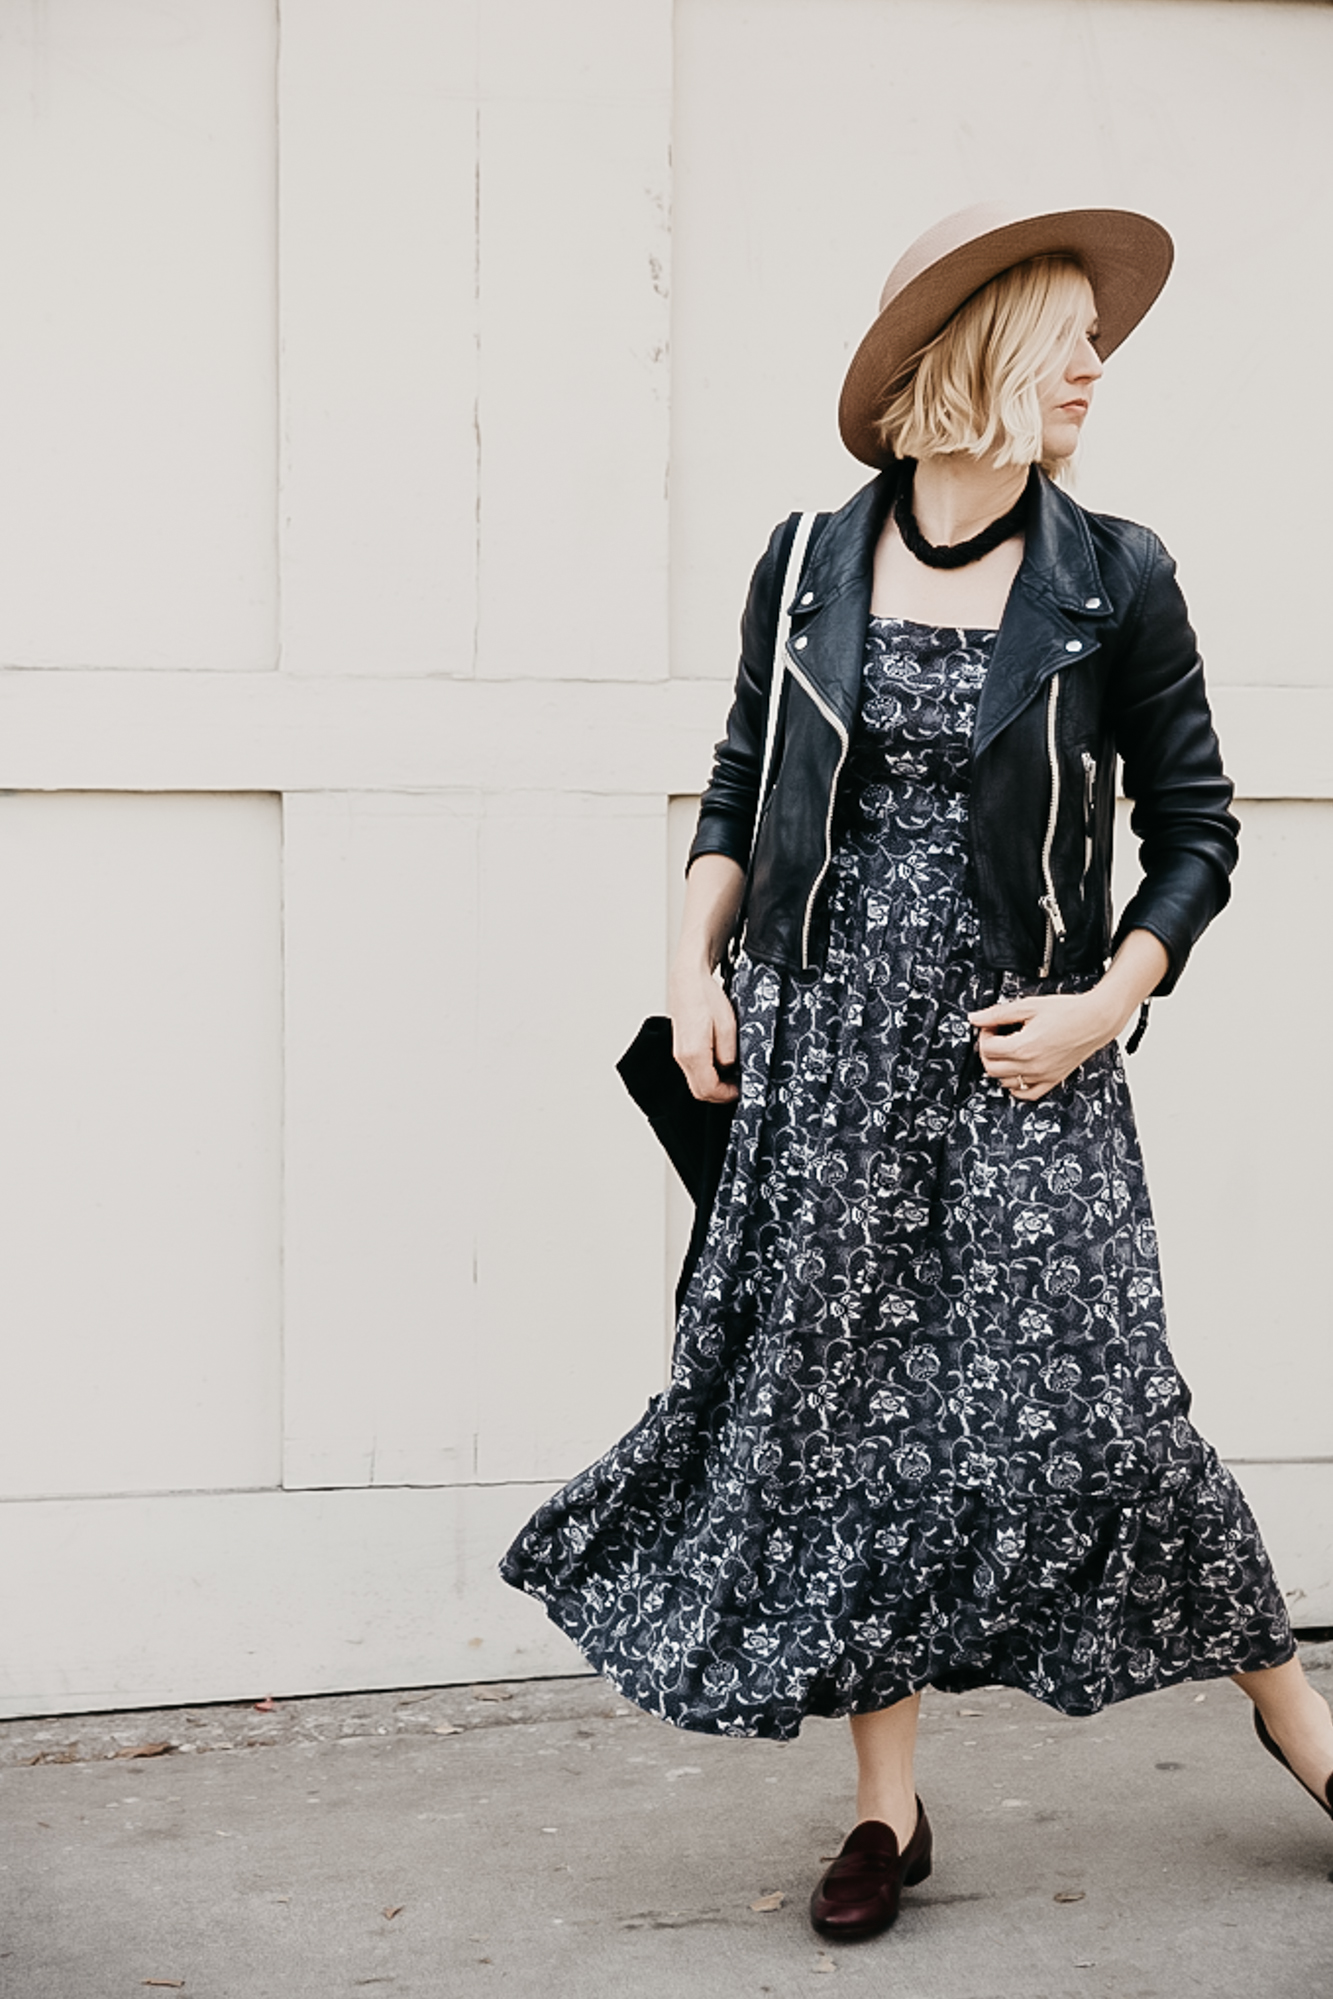 Get This Dress And Accessories At Its Fashion Metro In: How To Style A Moody Fall Floral Midi Dress